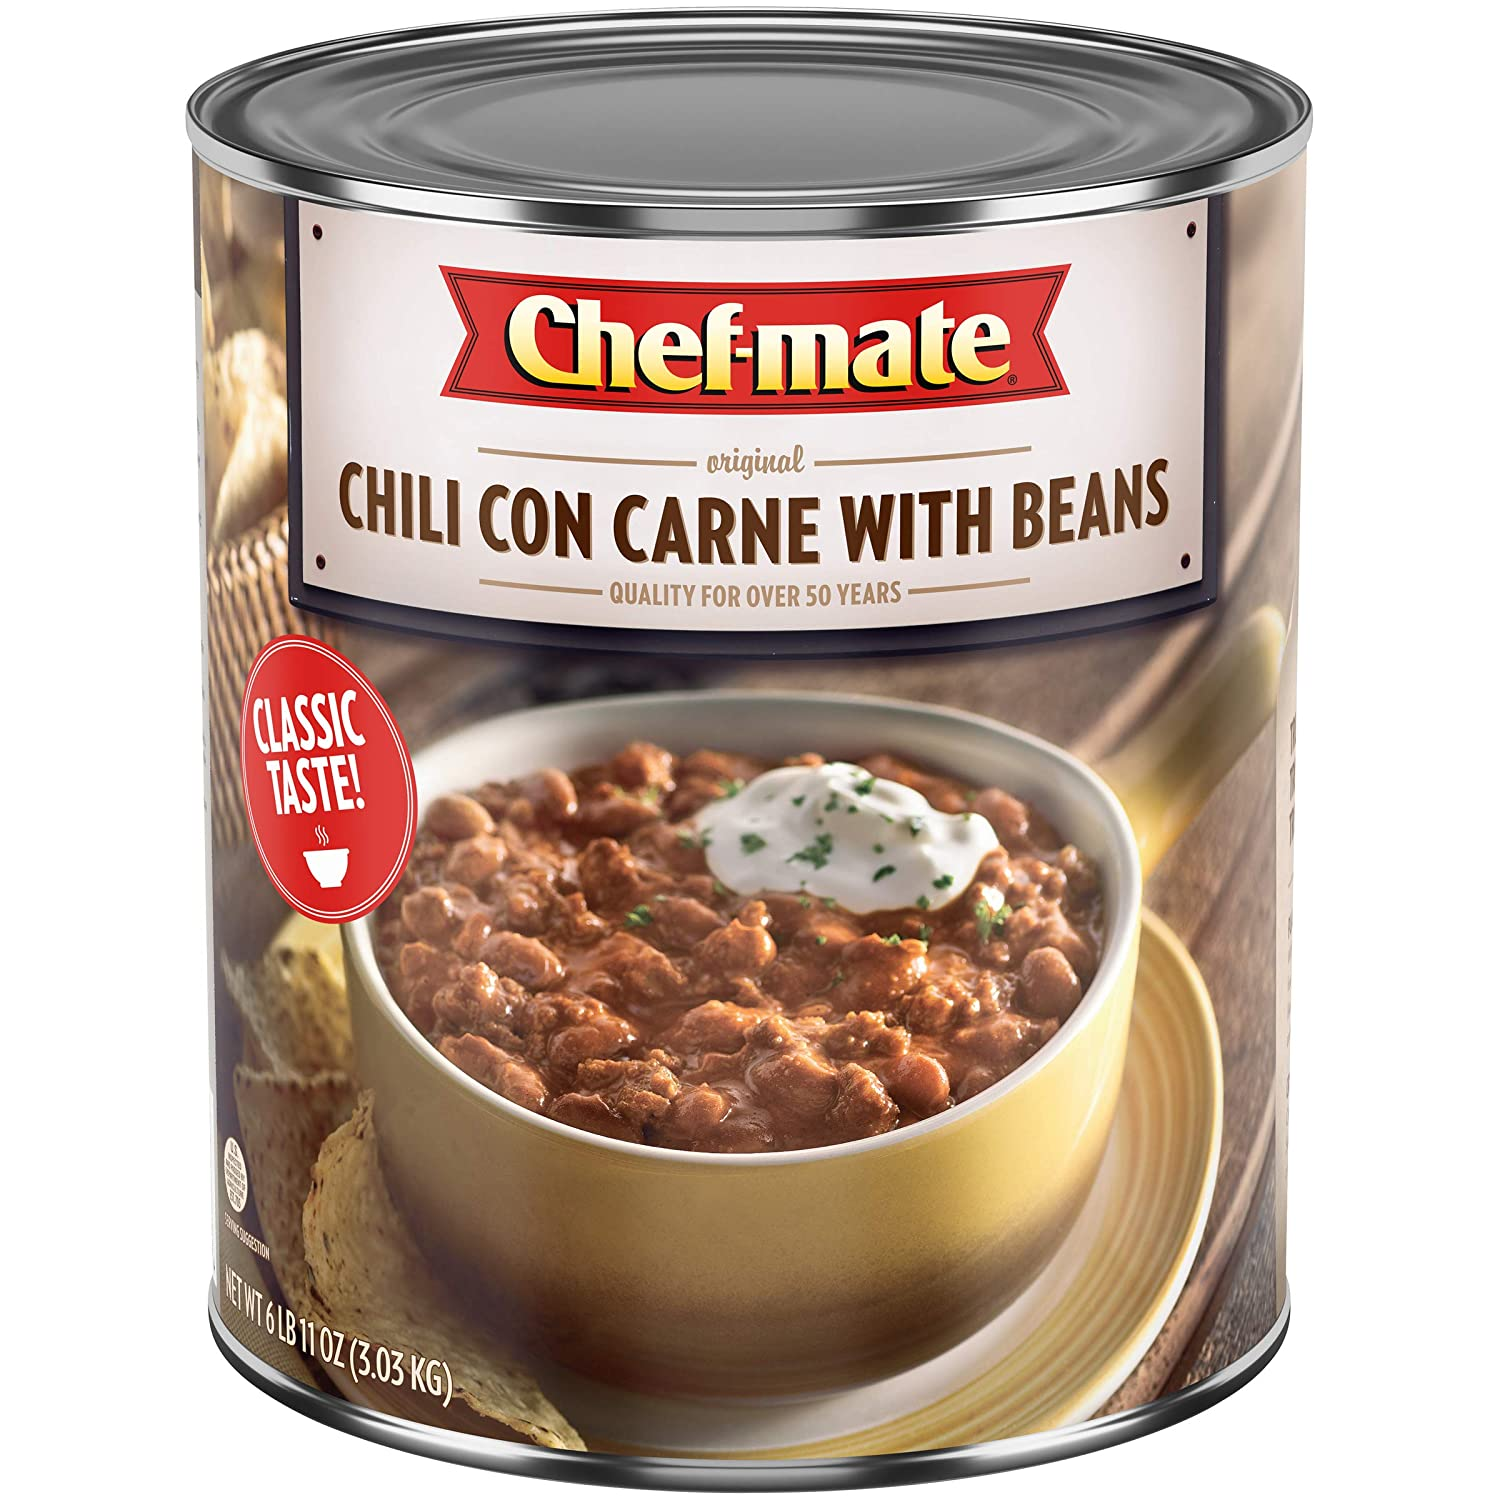 Chef Mate Beef Chili Chili Beans With Meat Canned Chili For Nachos Superbowl Party Supply 6 Lb 10 Oz 10 Can Bulk Amazon Com Grocery Gourmet Food